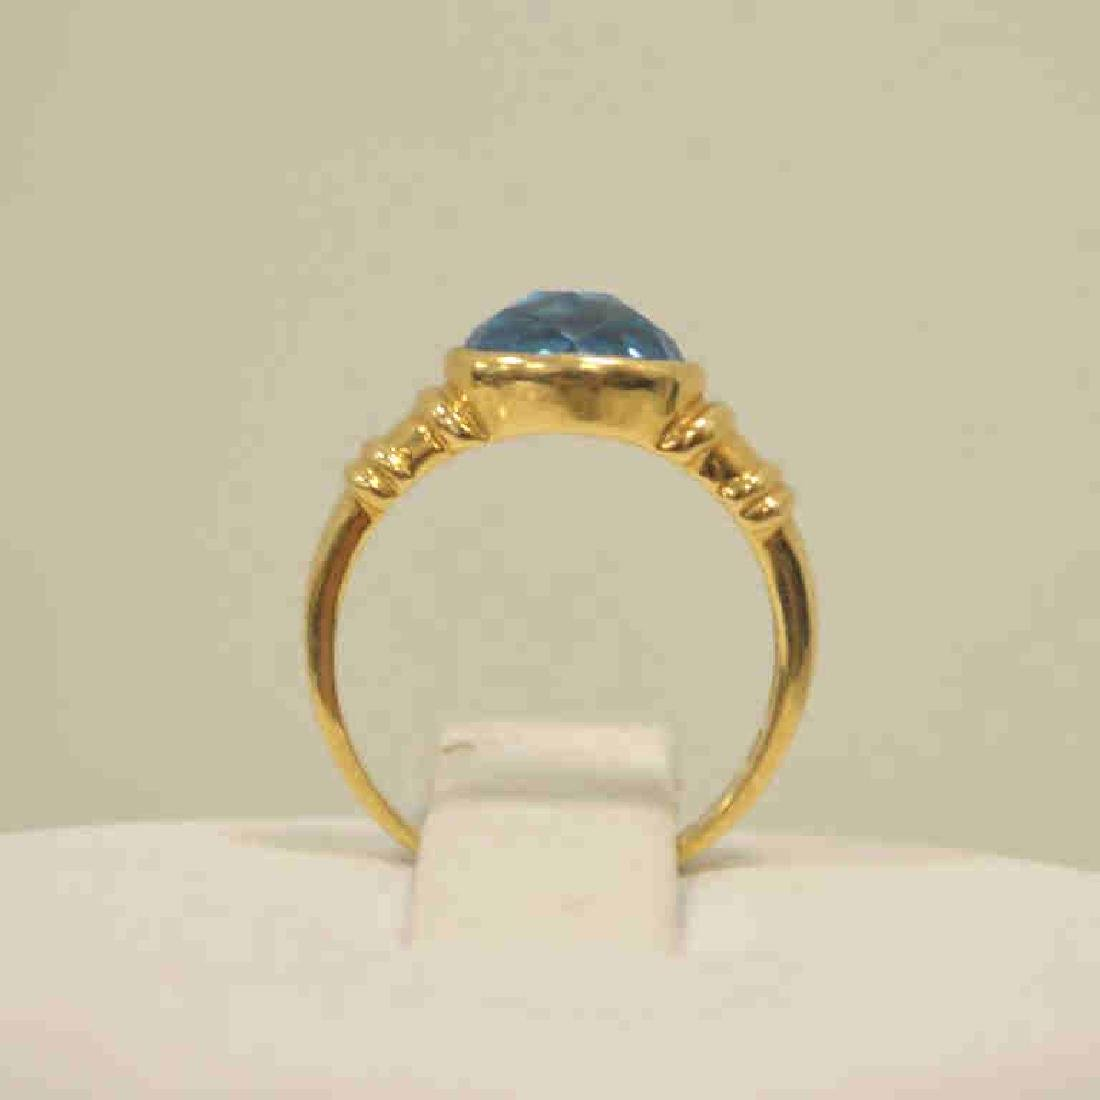 18kt yellow gold blue topaz ring - 3